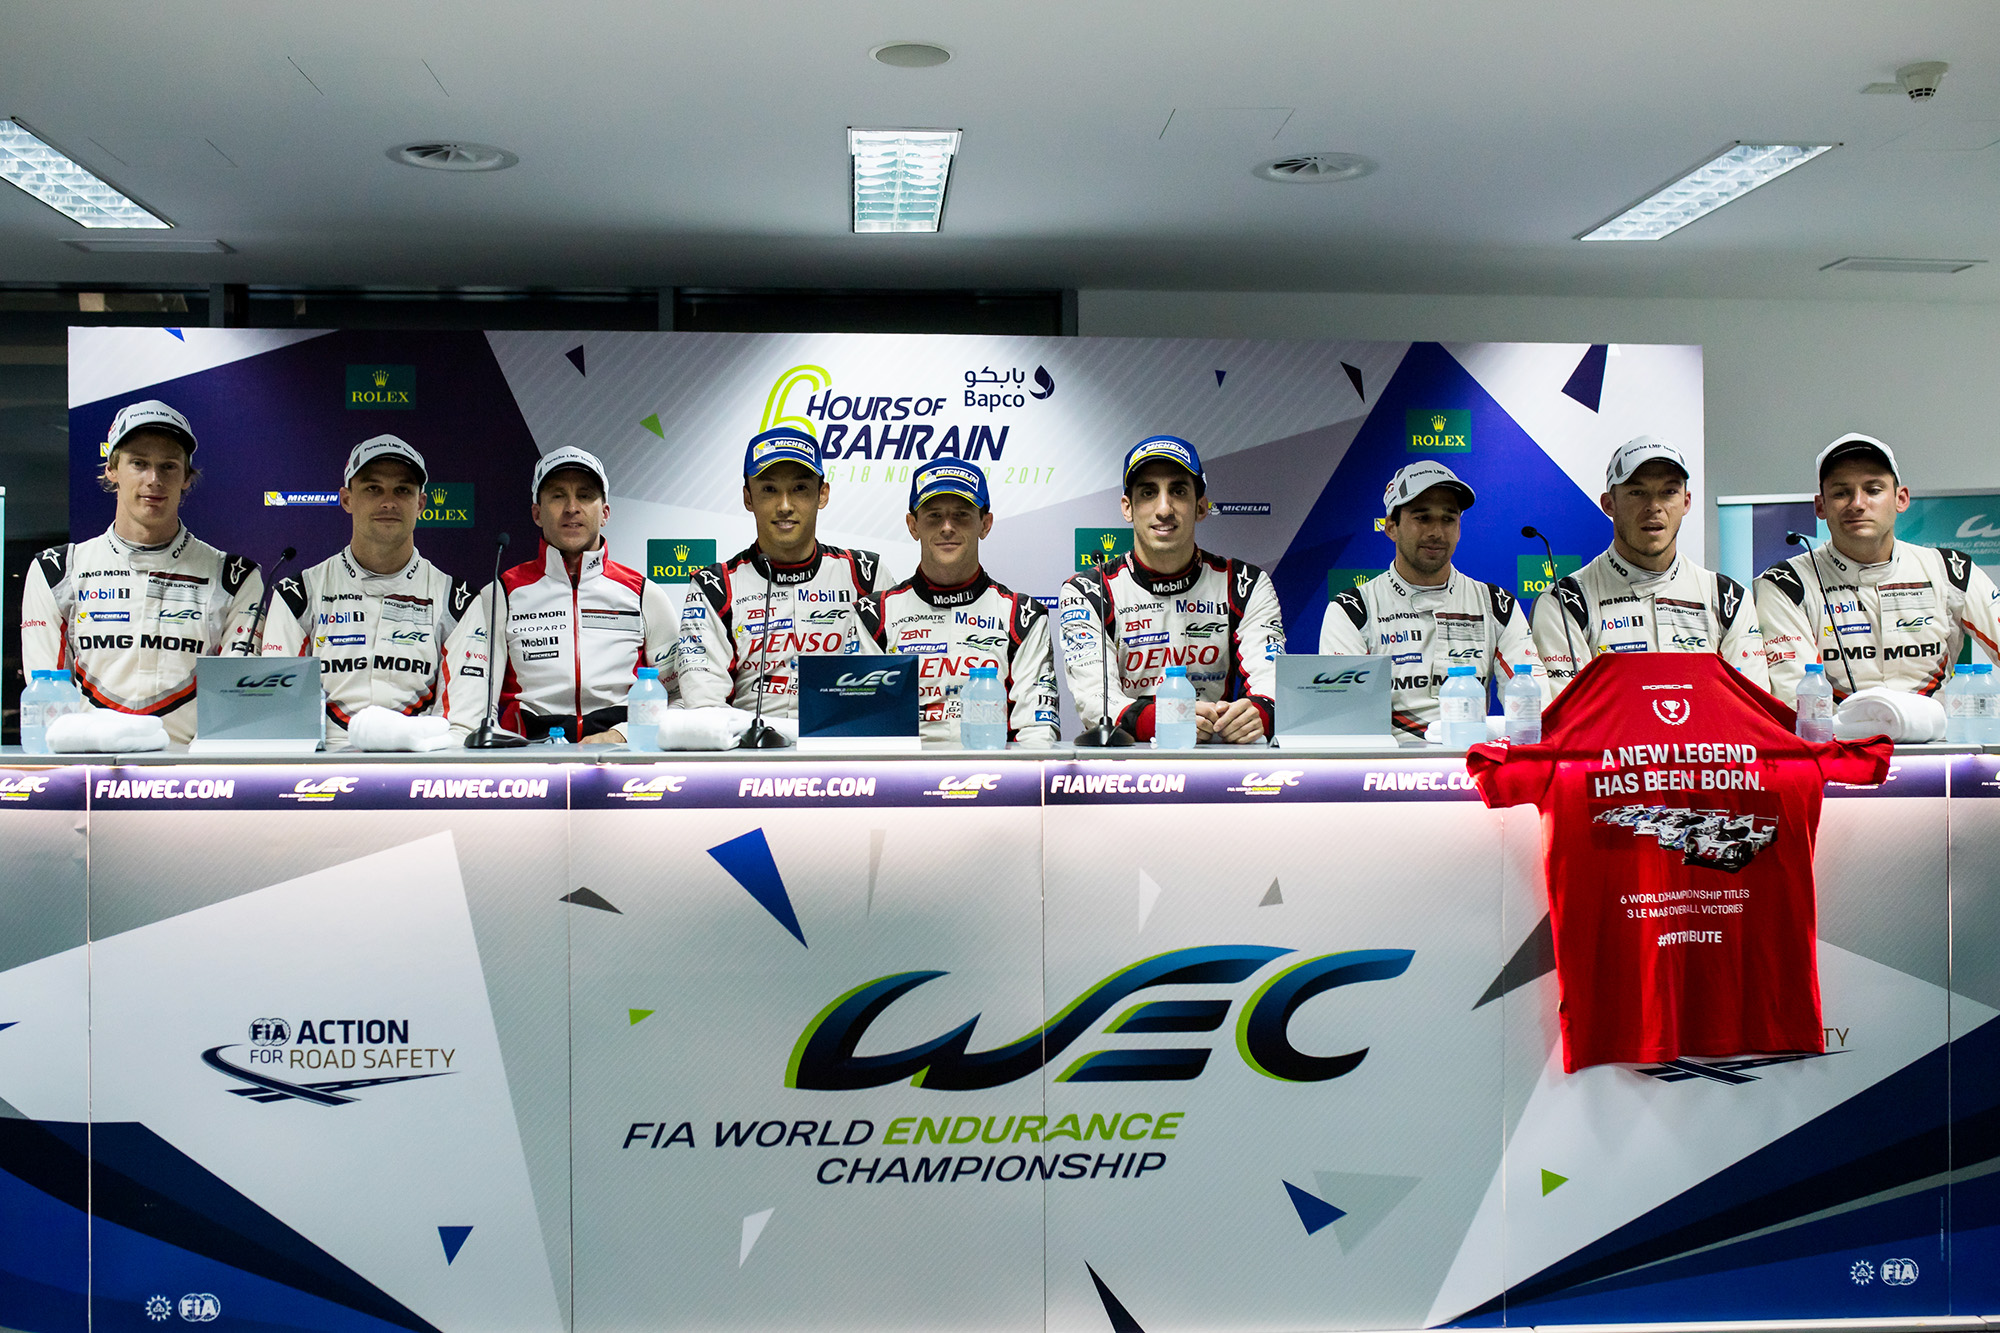 WEC, 6 Hours of Bahrain, Motorsport